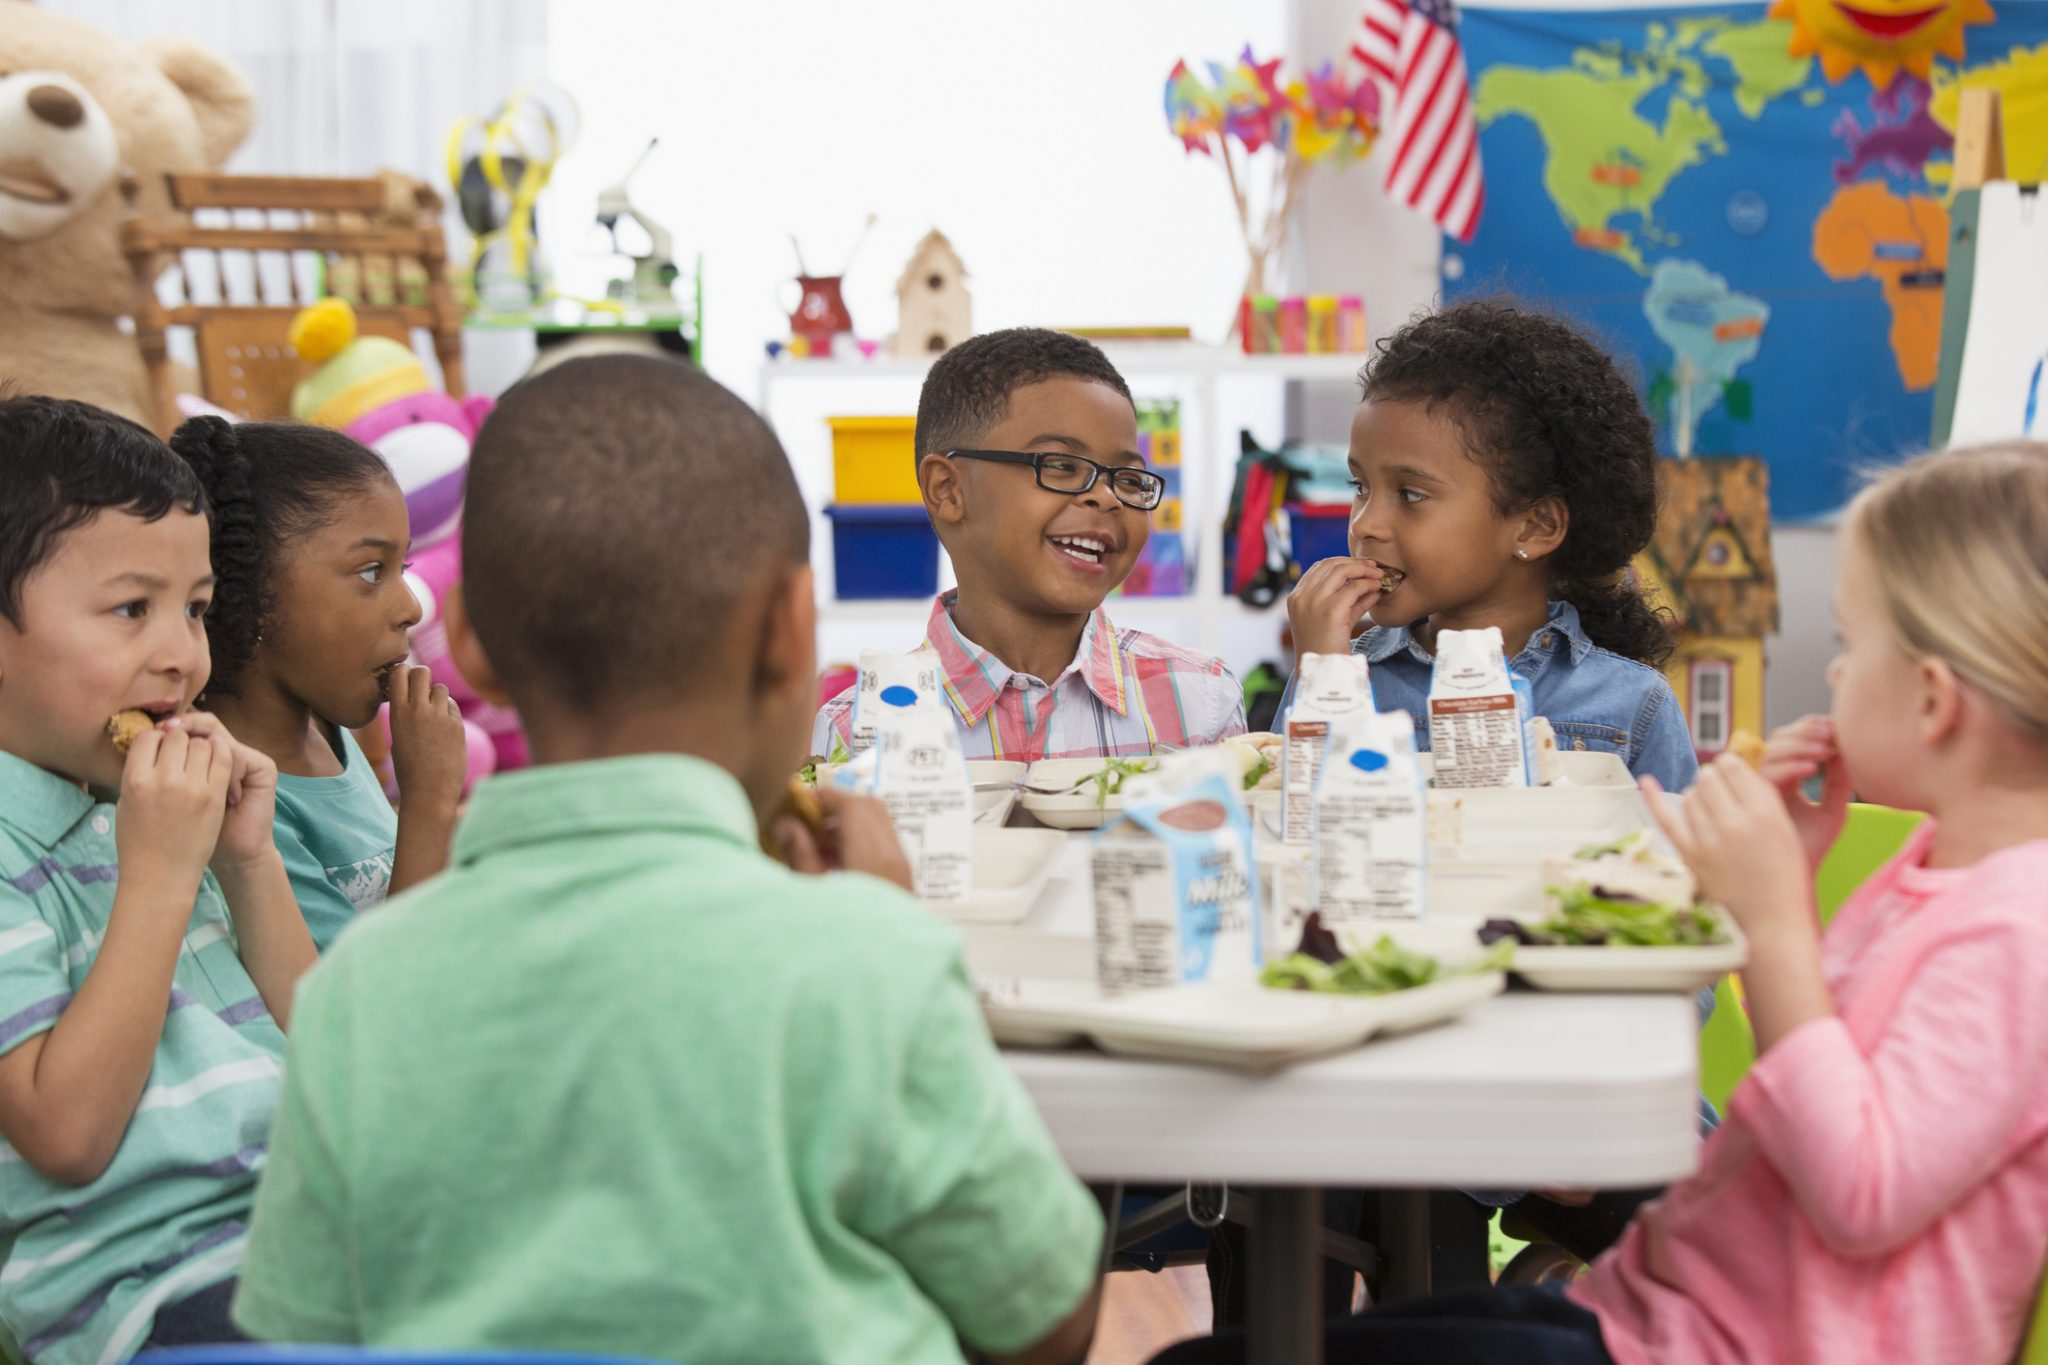 Young students eating lunch at school